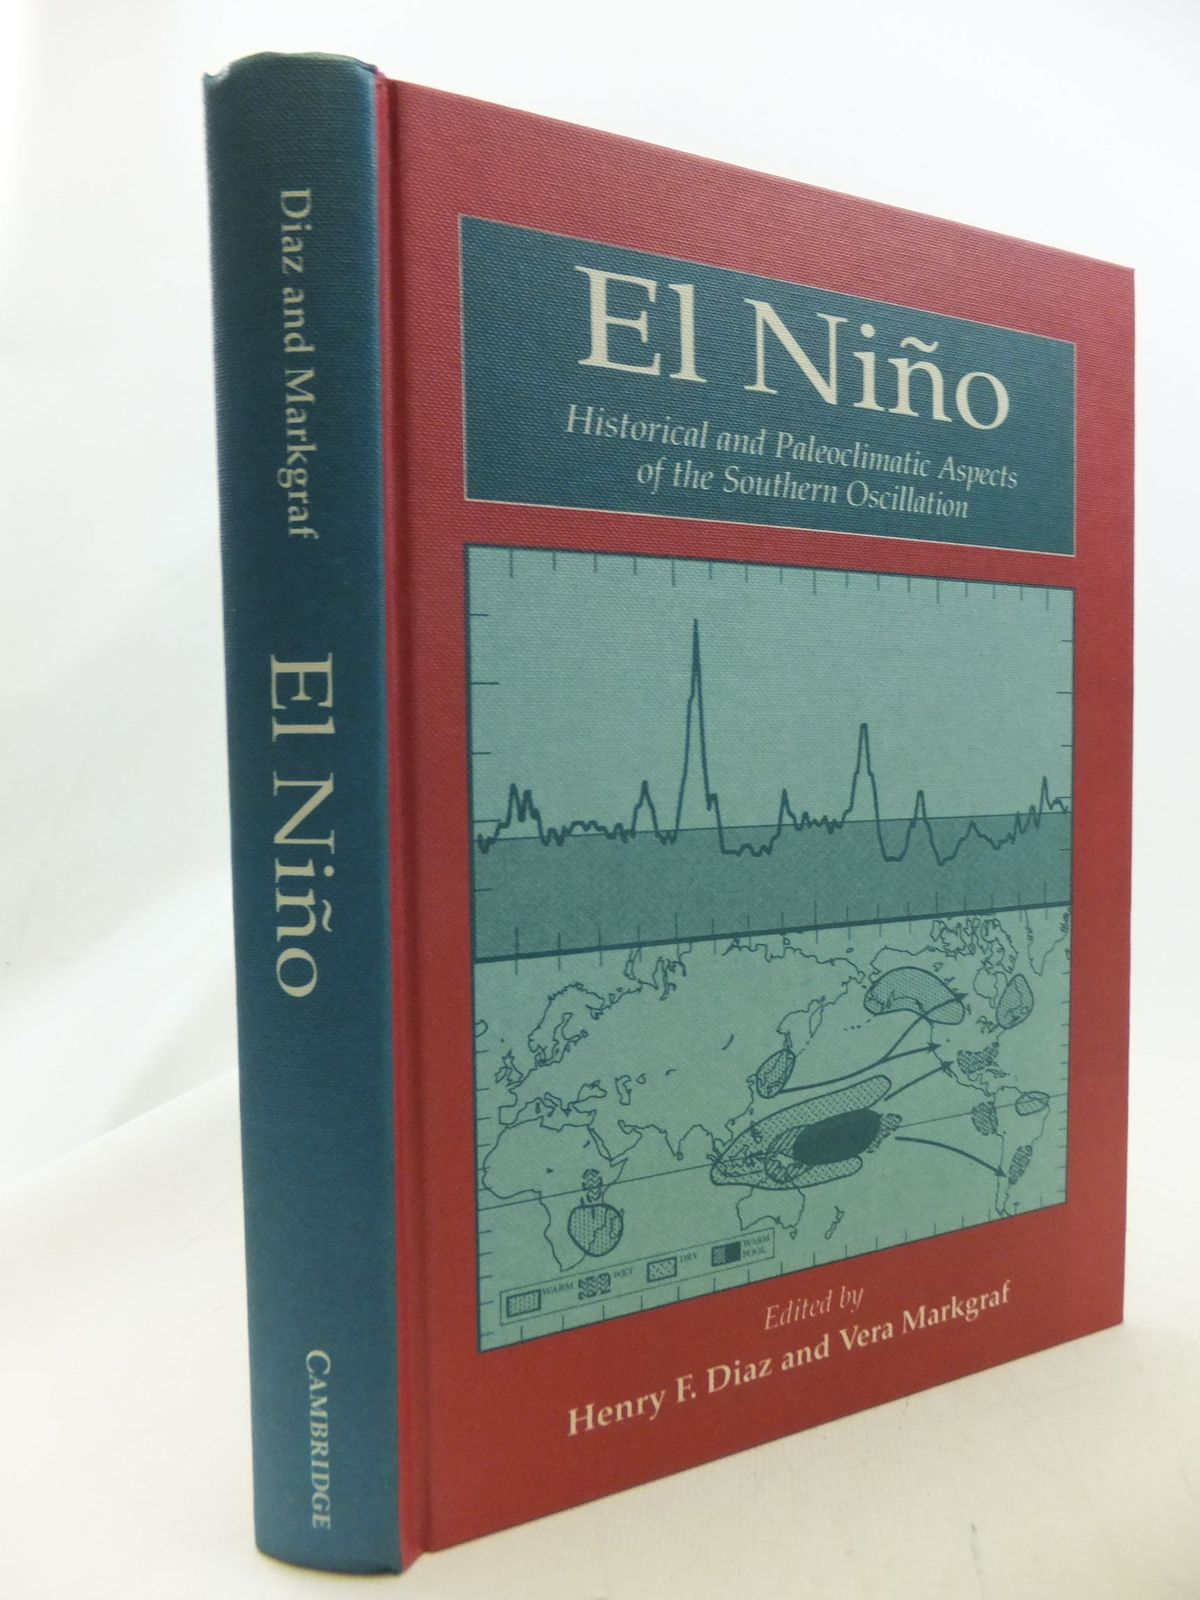 El Nino: Historical And Paleoclimatic Aspects Of The Southern Oscillation